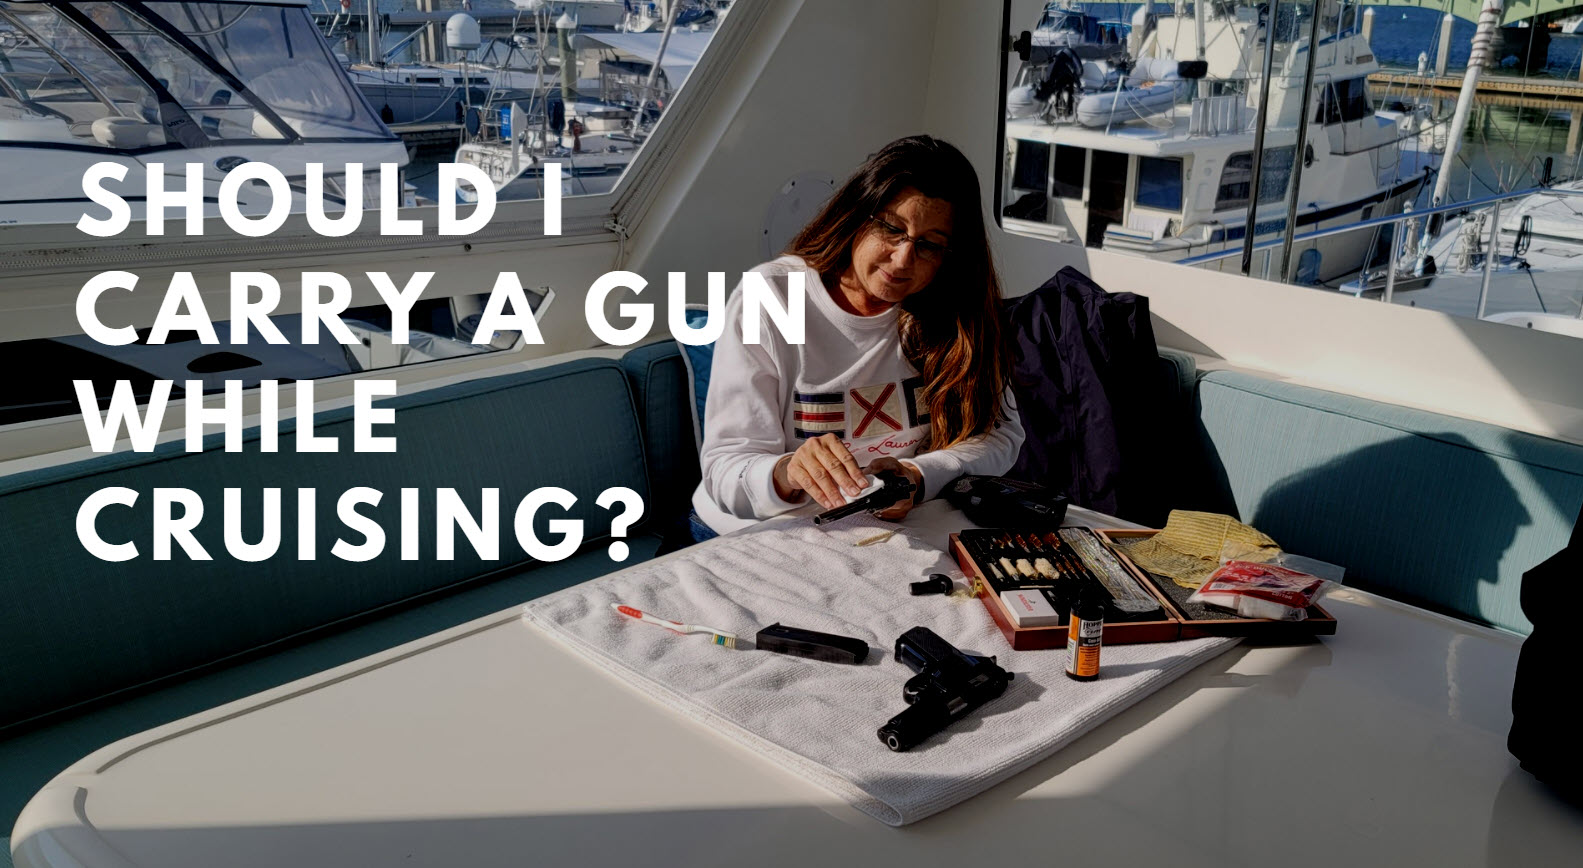 gun on yacht while cruising